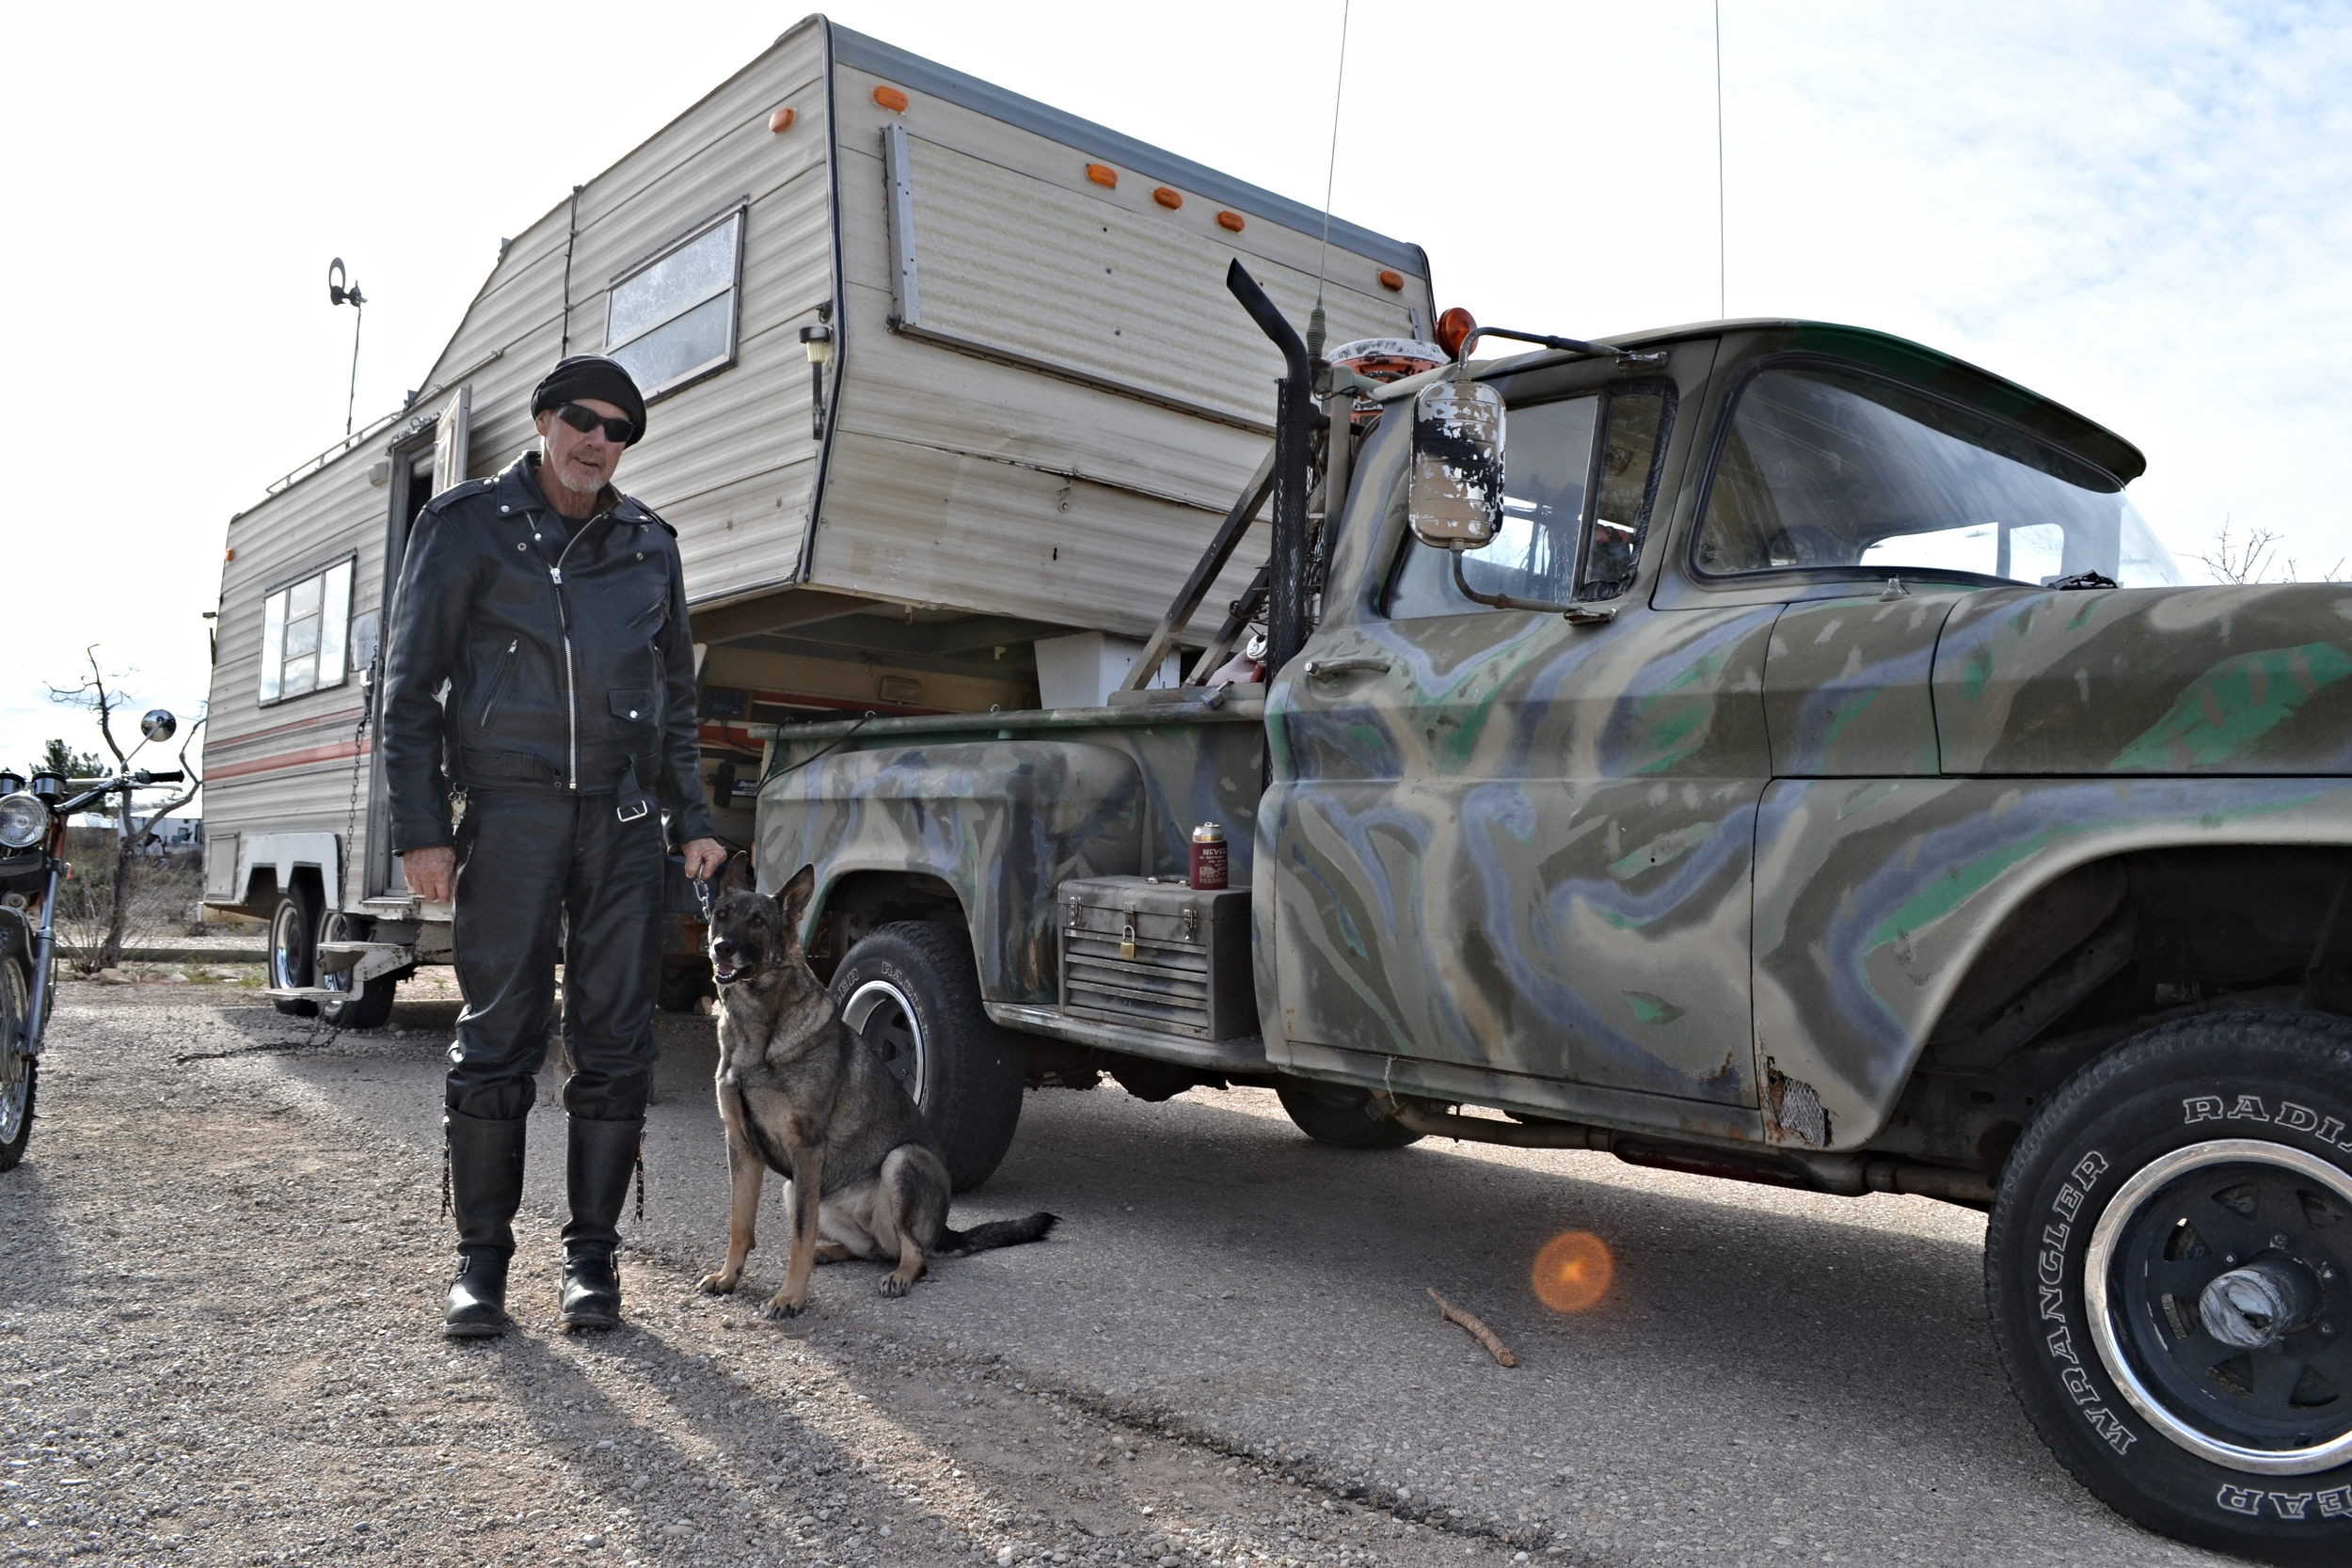 Richard Shuman and his service dog, Hannah, pose before their outpost at Brantley Lake State Park, New Mexico.